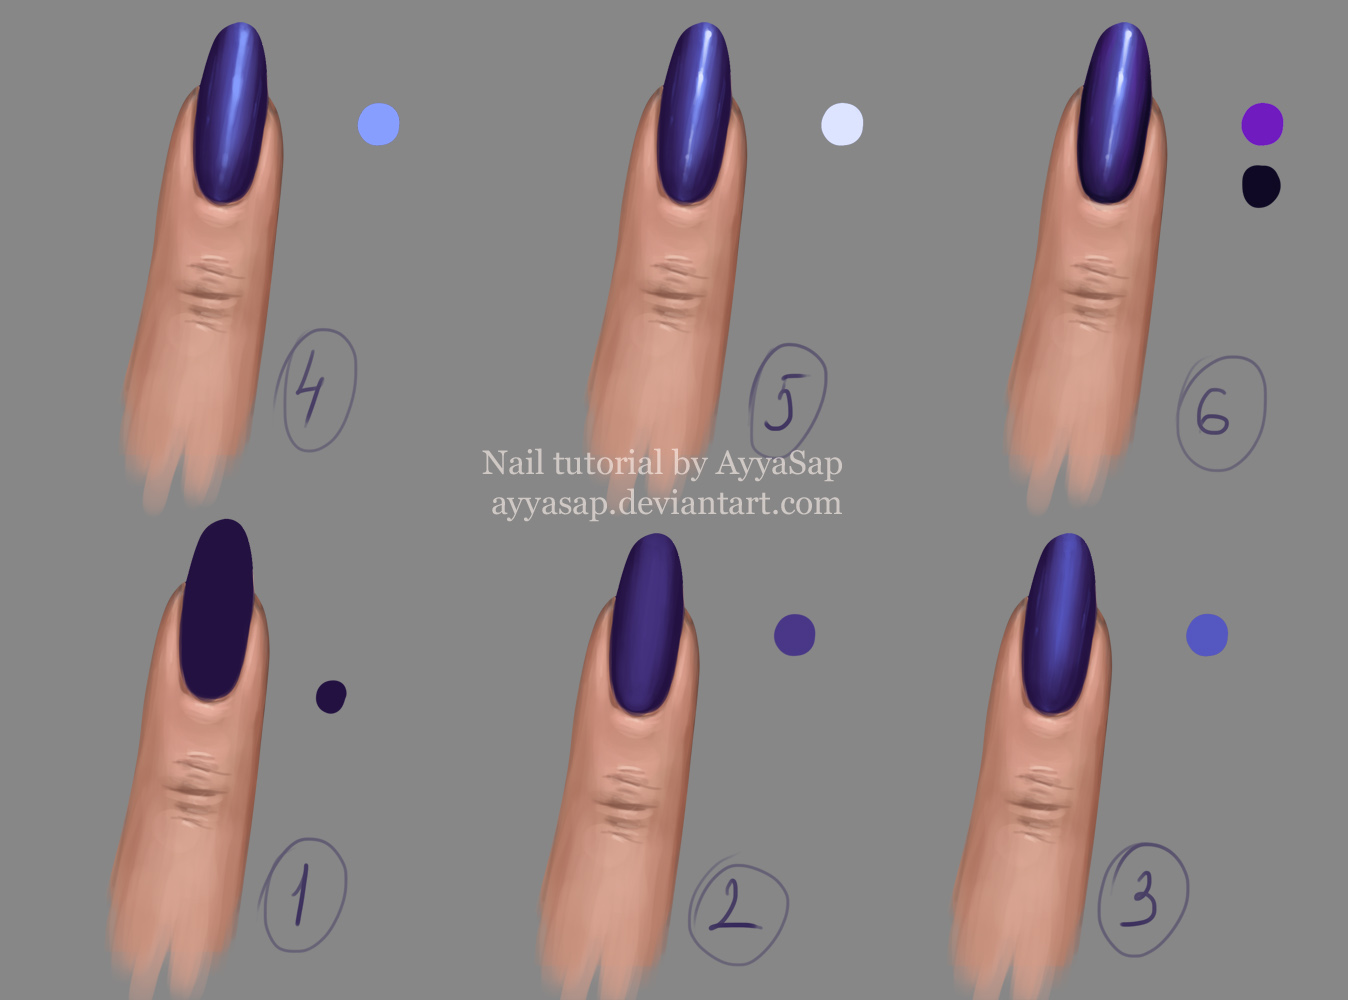 Nail Tutorial 2 by AyyaSap